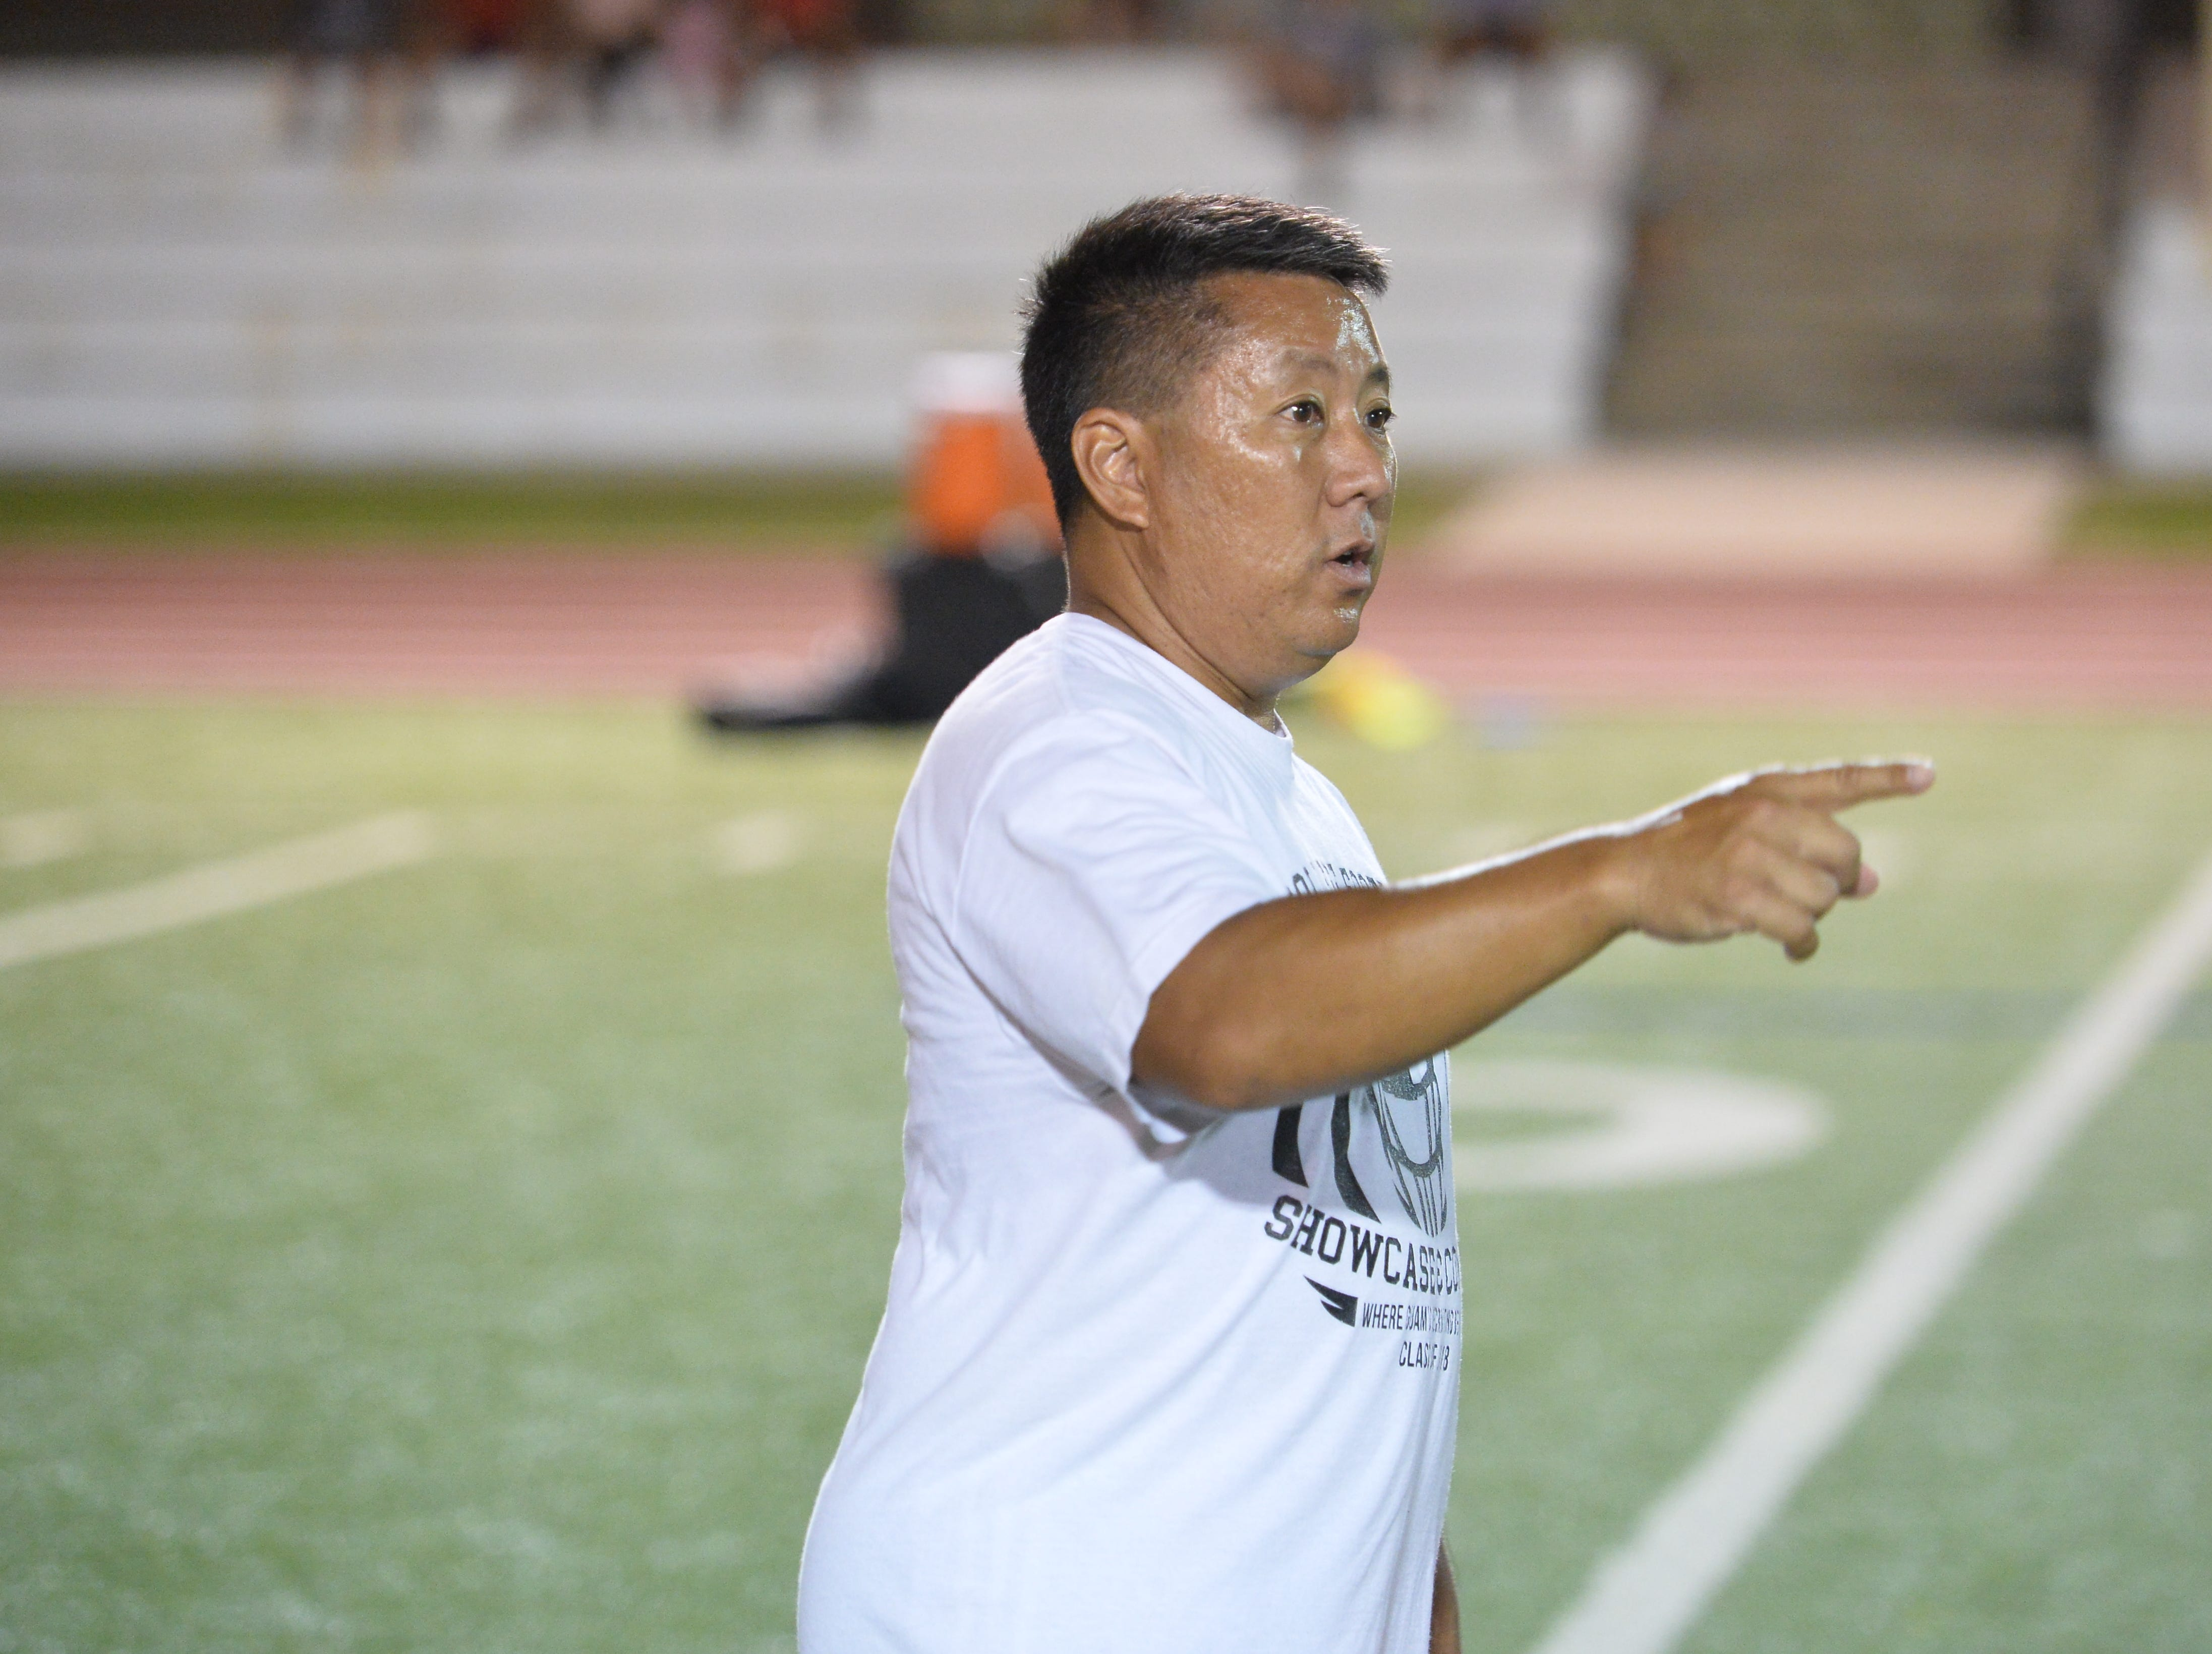 Chad Ikei, a longtime professional strength coach out of Hawaii. was one of a half-dozen volunteers who offered a three-day college showcase and combine to help Guam athletes.